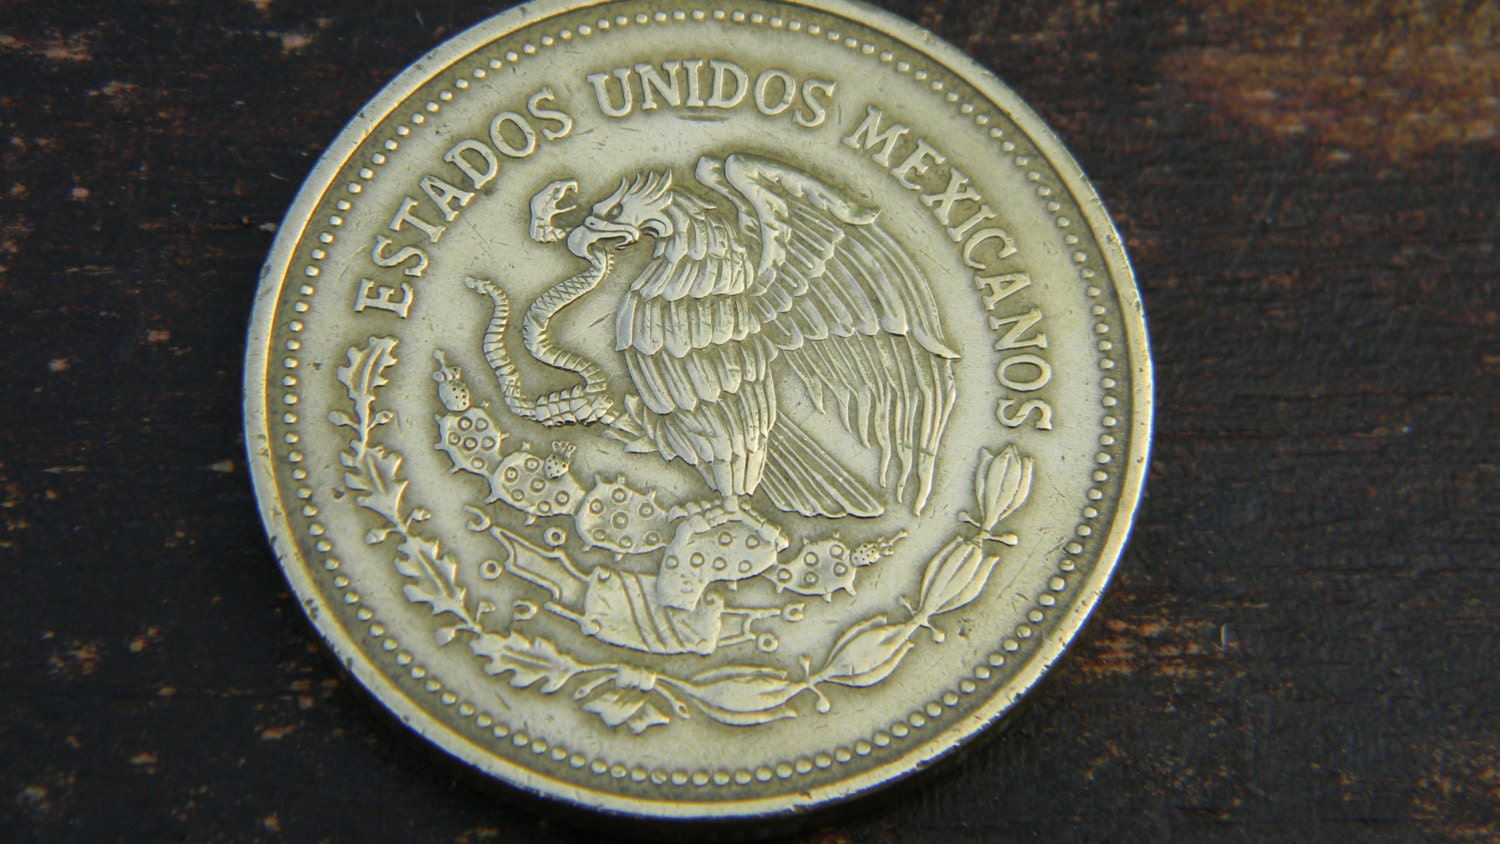 Large Coin Mexico 1000 Peso Coin Eagle And By Tradewindsnorth